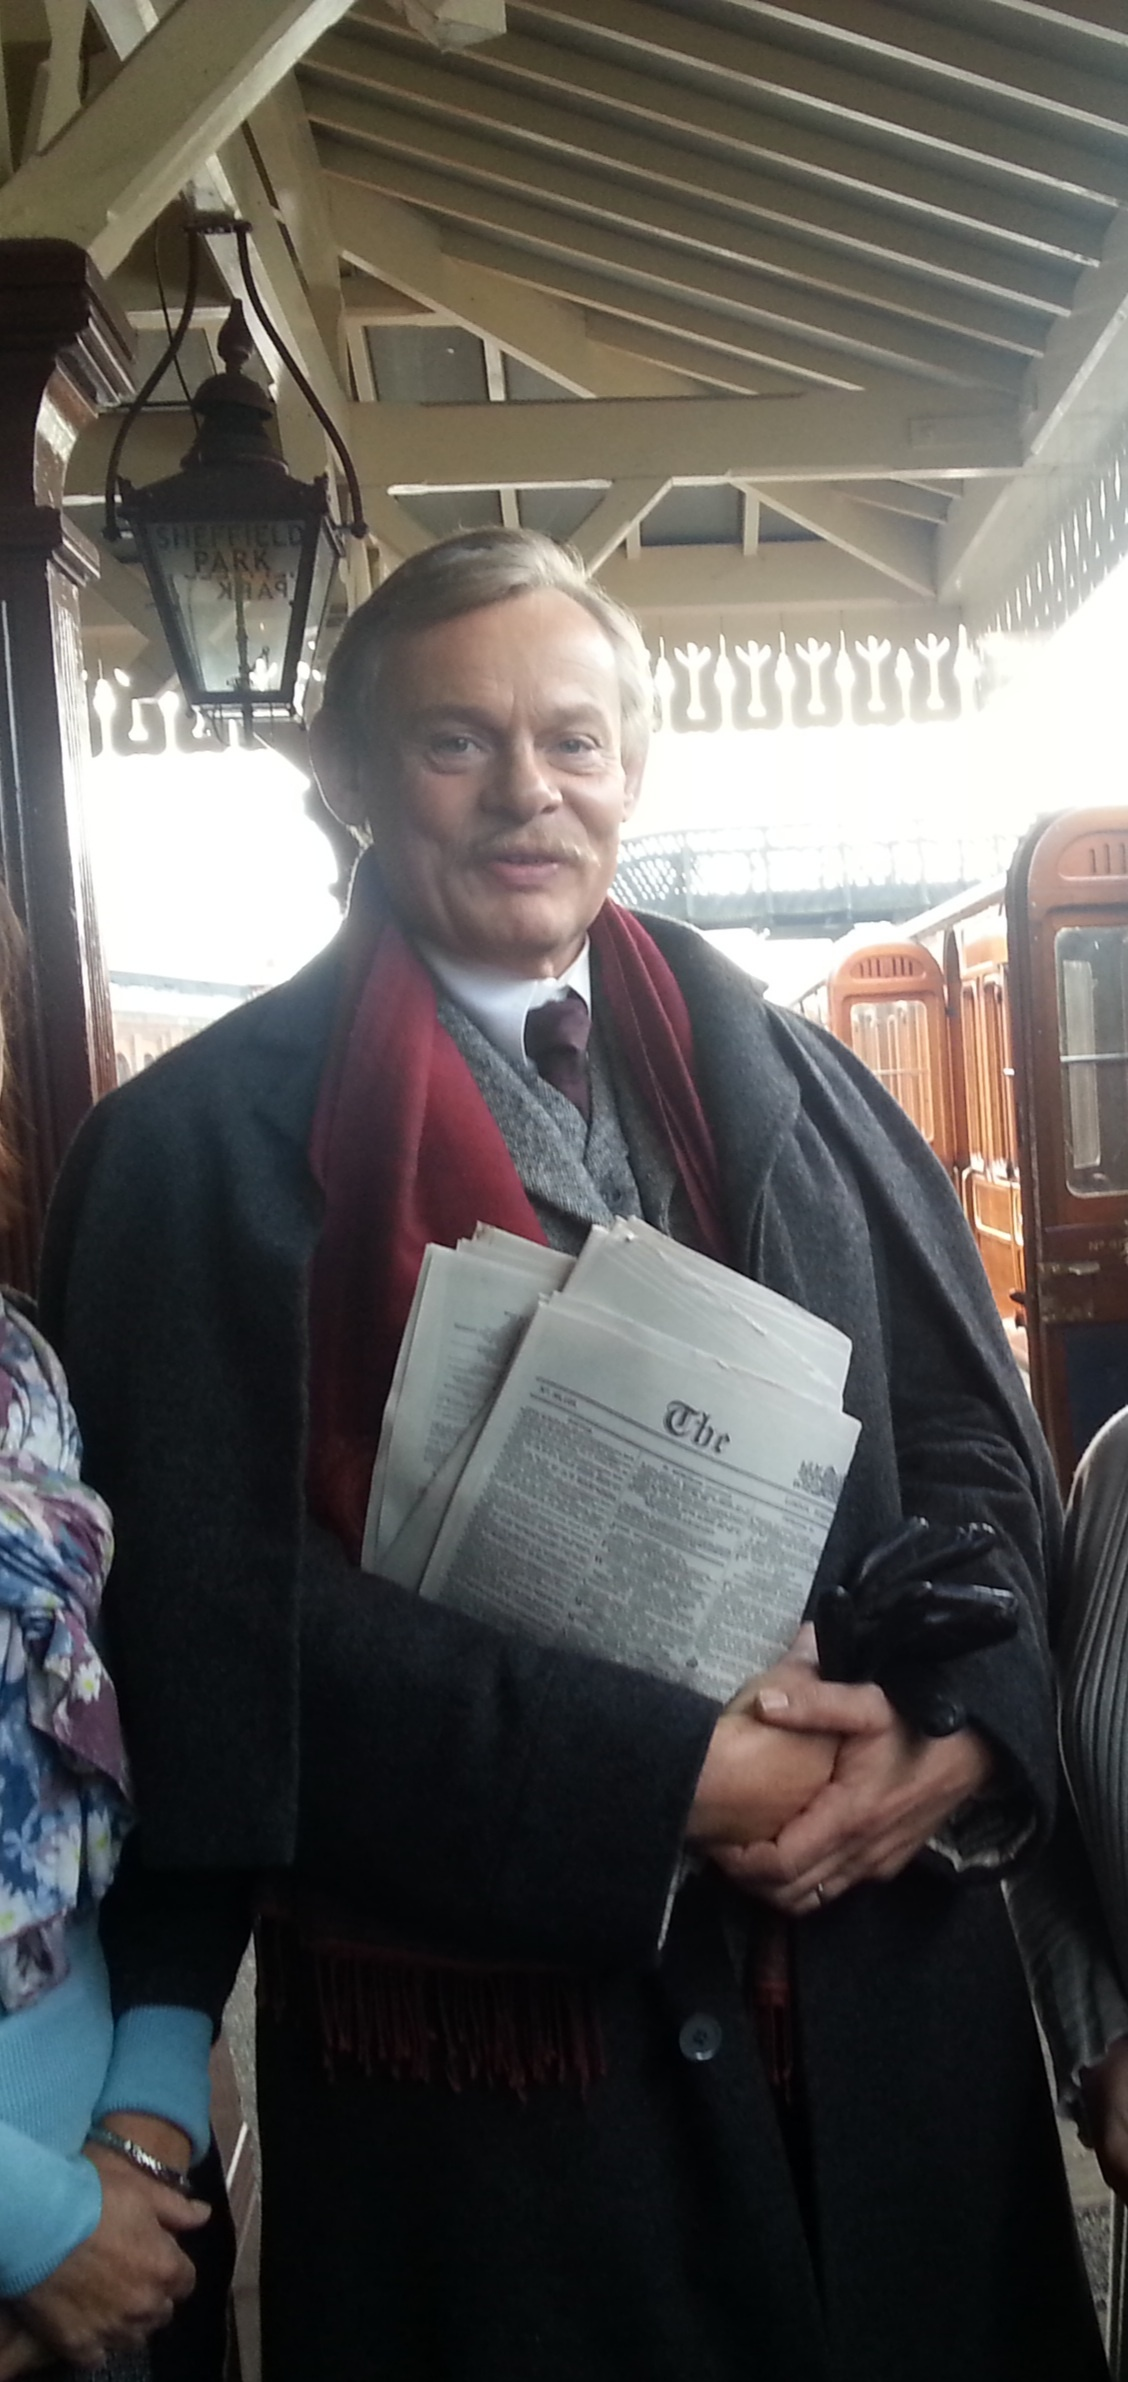 martin_clunes_at_bluebell_railway_is_2014_27july2020_2382